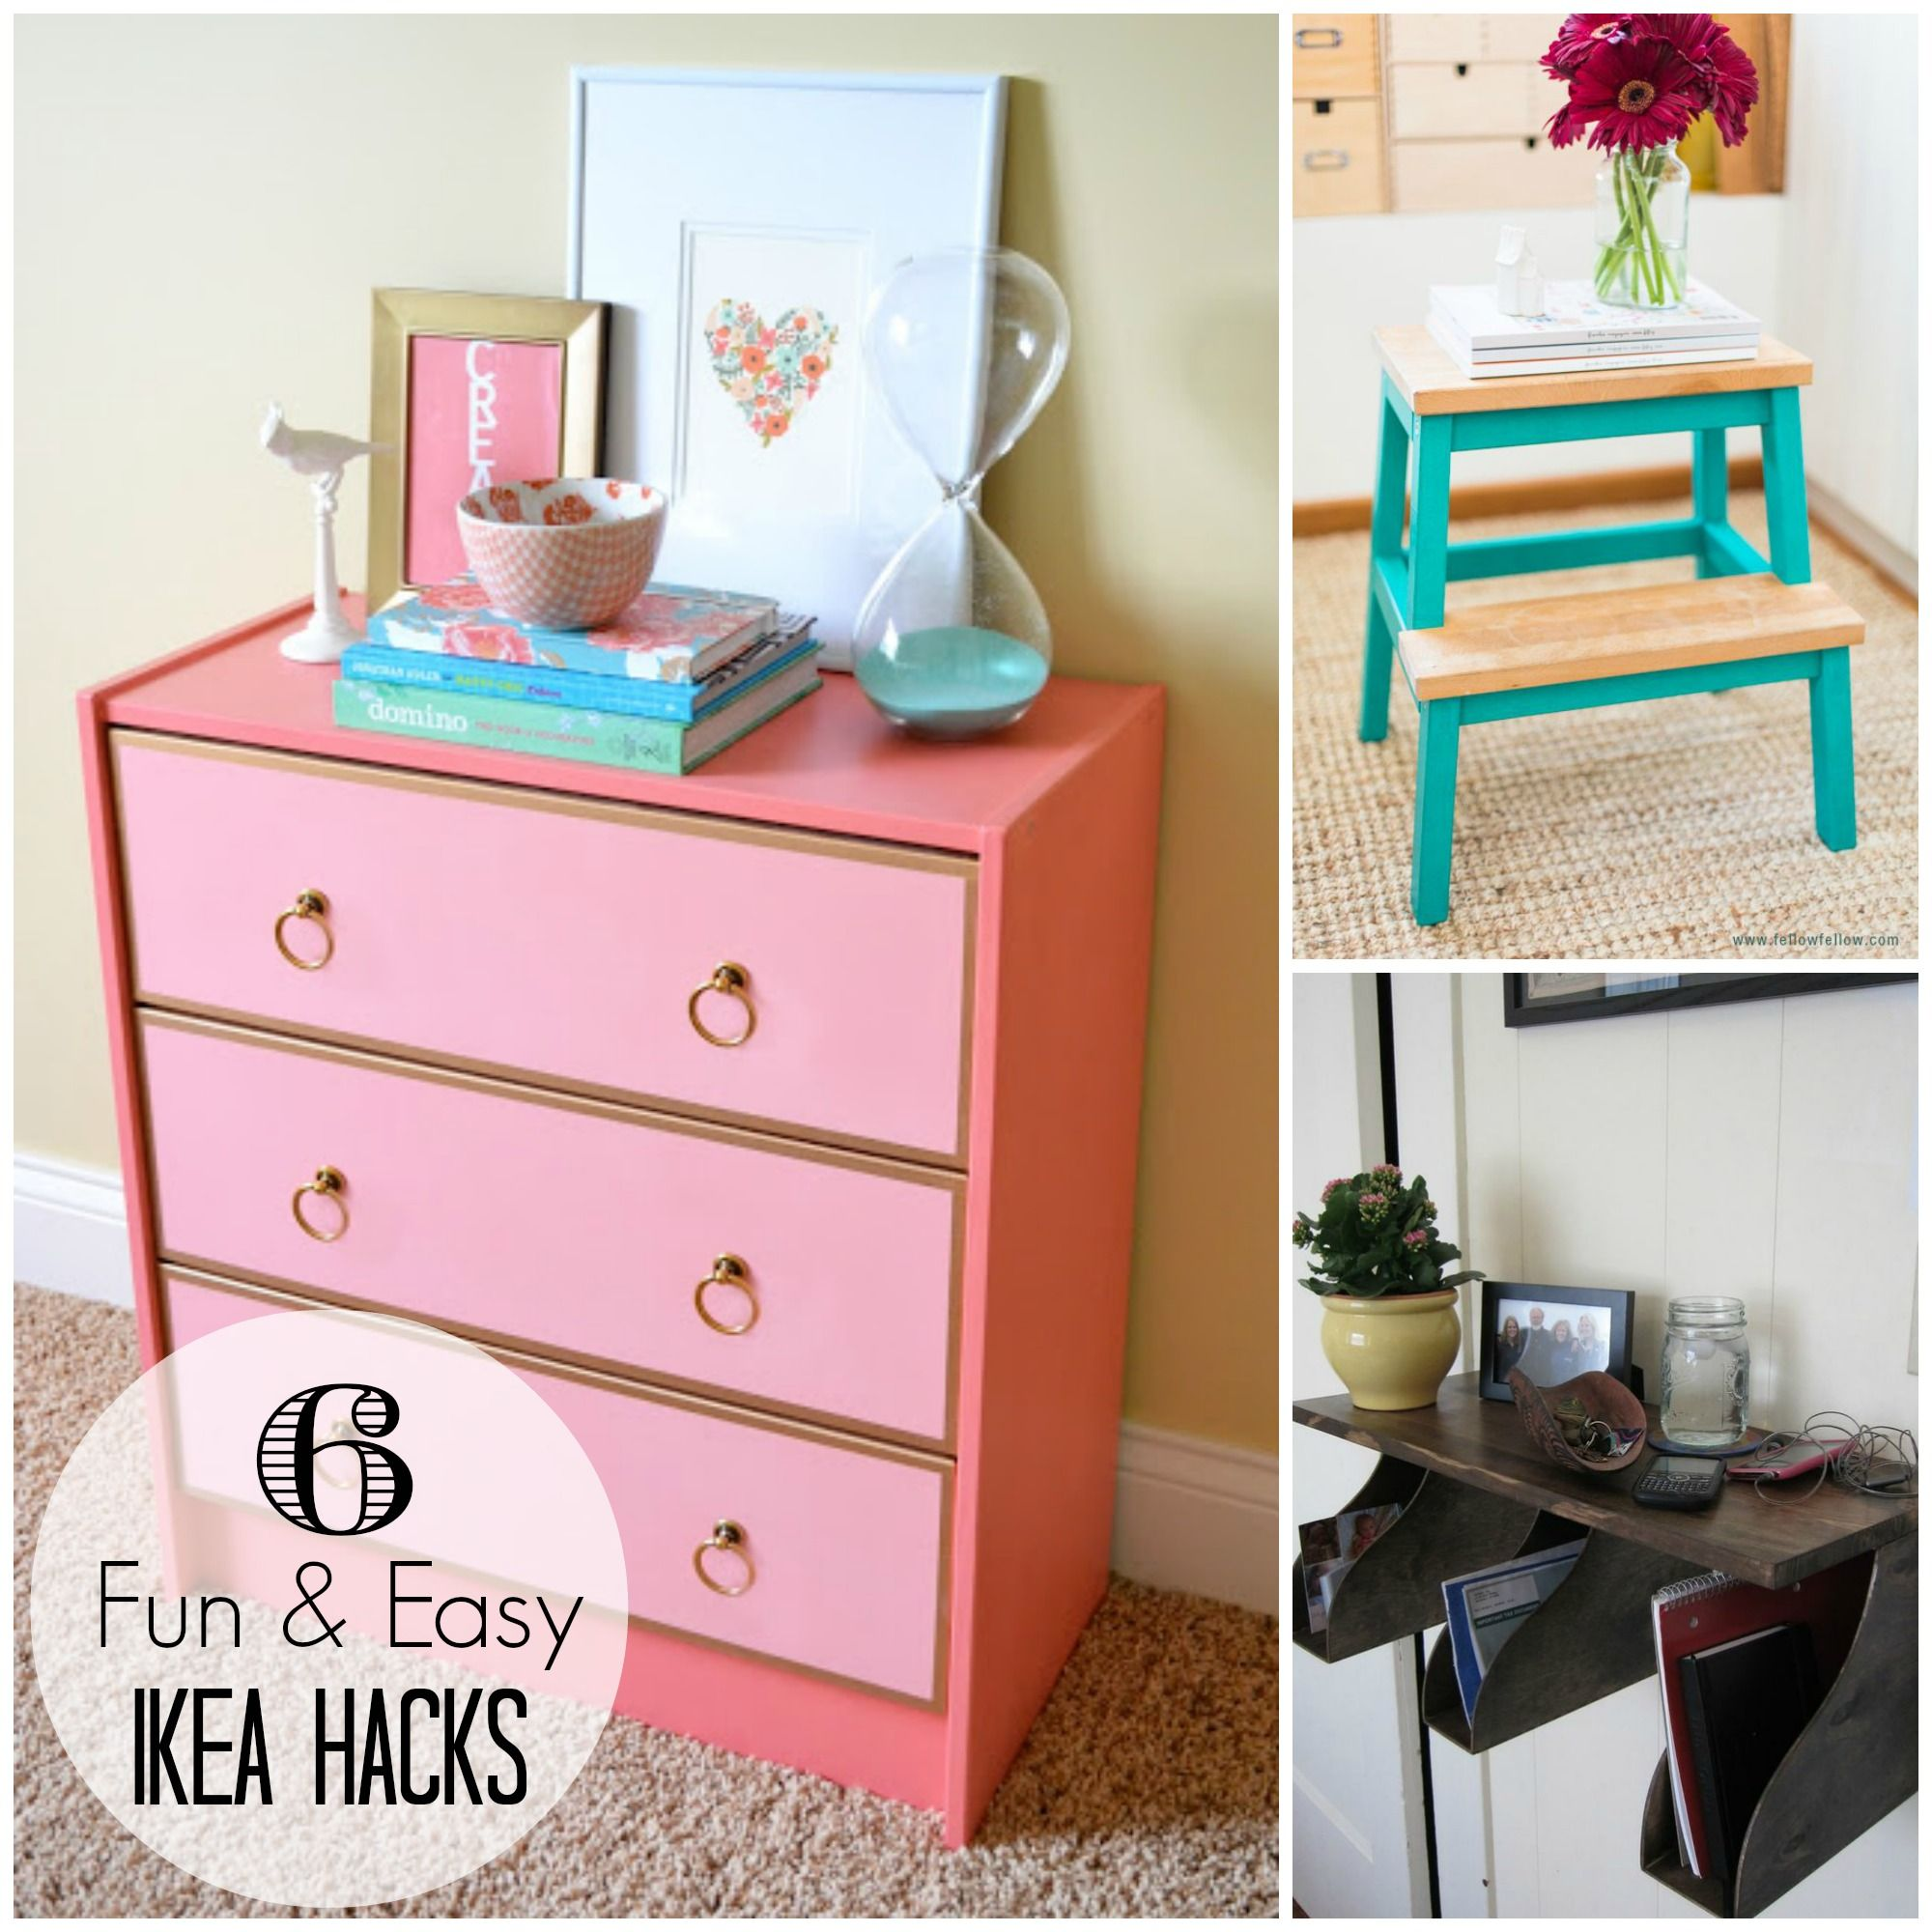 6 Easy Diy Projects Using Inexpensive Items From Ikea